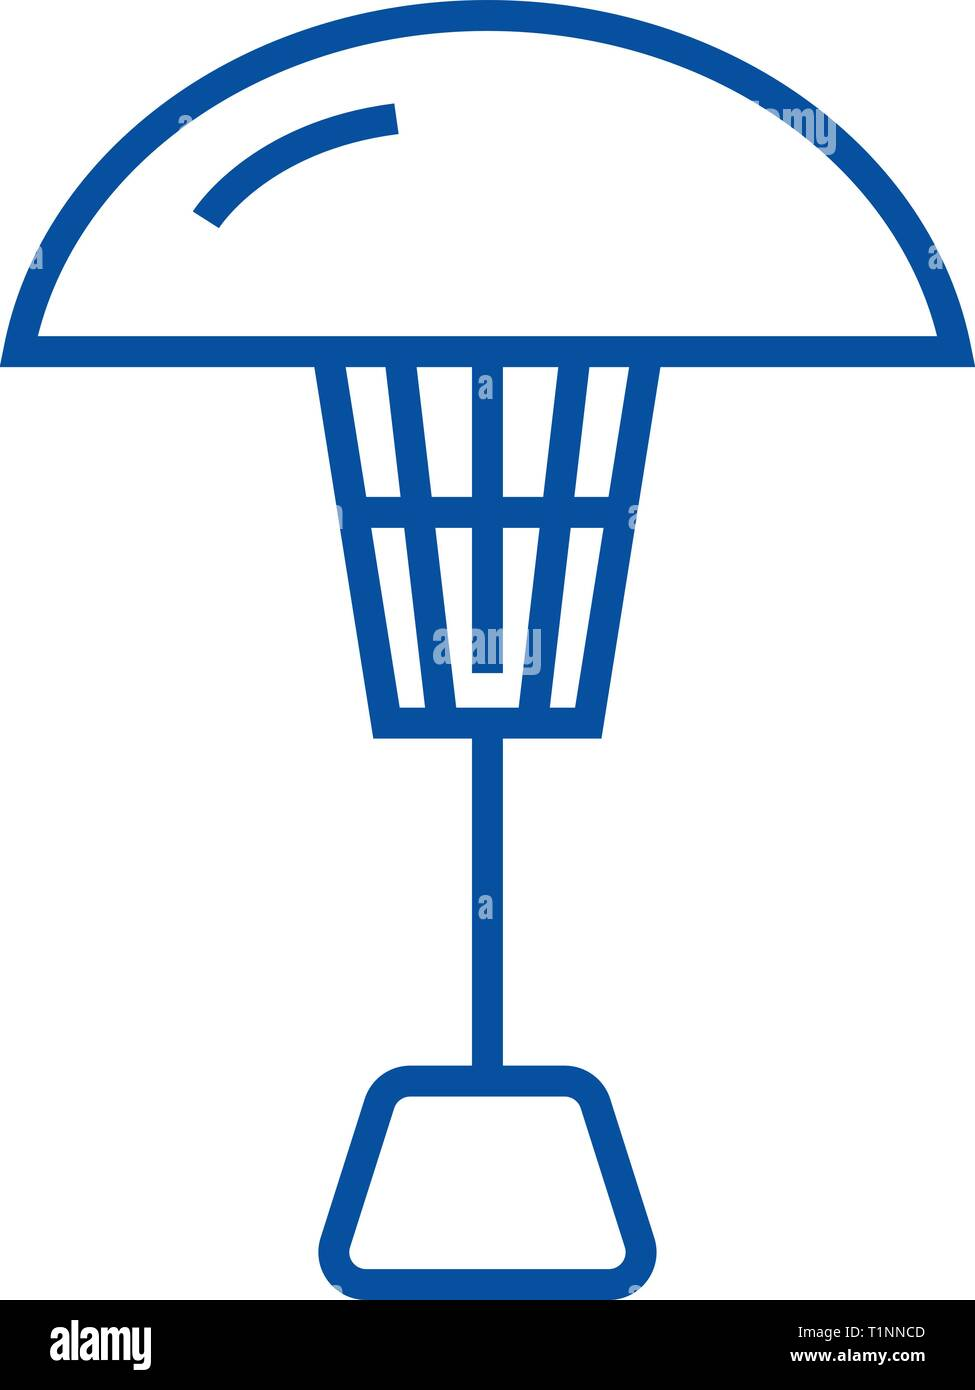 Patio heater line icon concept. Patio heater flat  vector symbol, sign, outline illustration. - Stock Vector